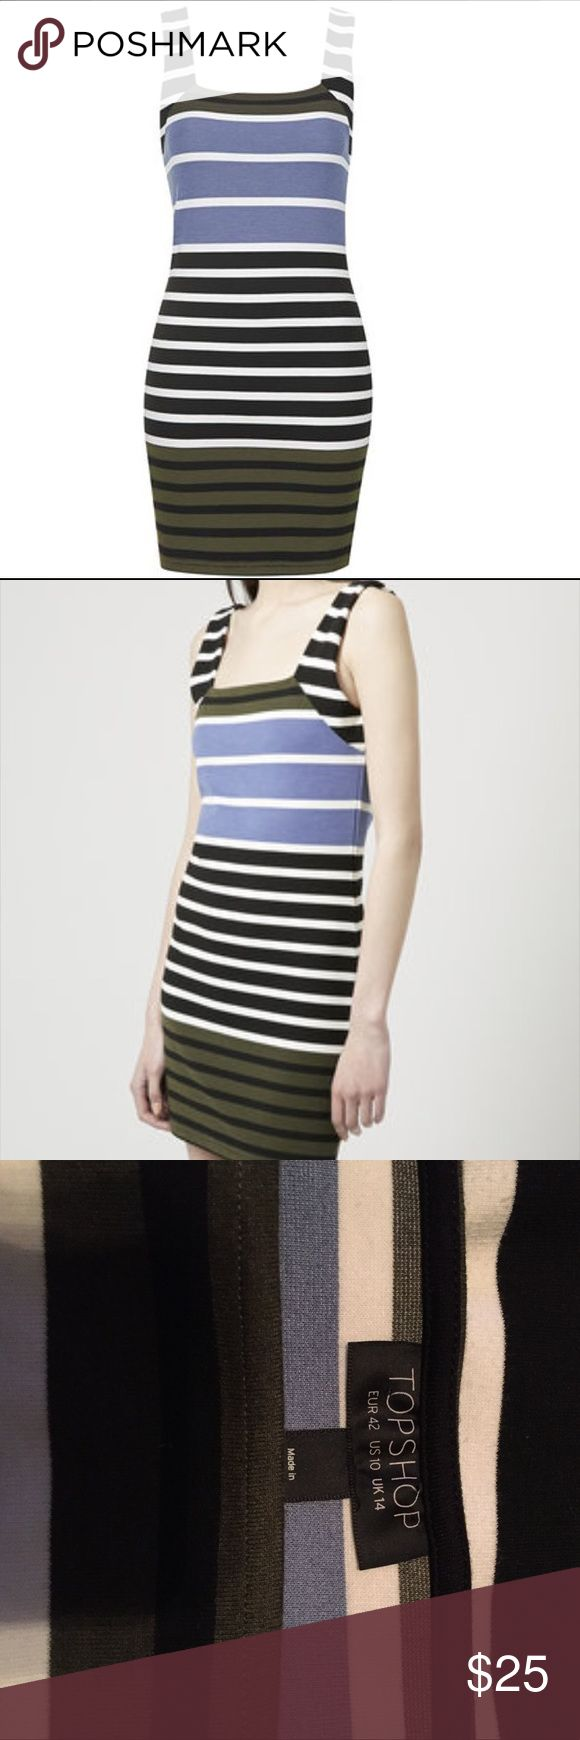 Topshop Blue Striped Bodycon Dress Cool square neck bodycon dress from Topshop. Black, blue and white stripes. Like new condition! Topshop Dresses